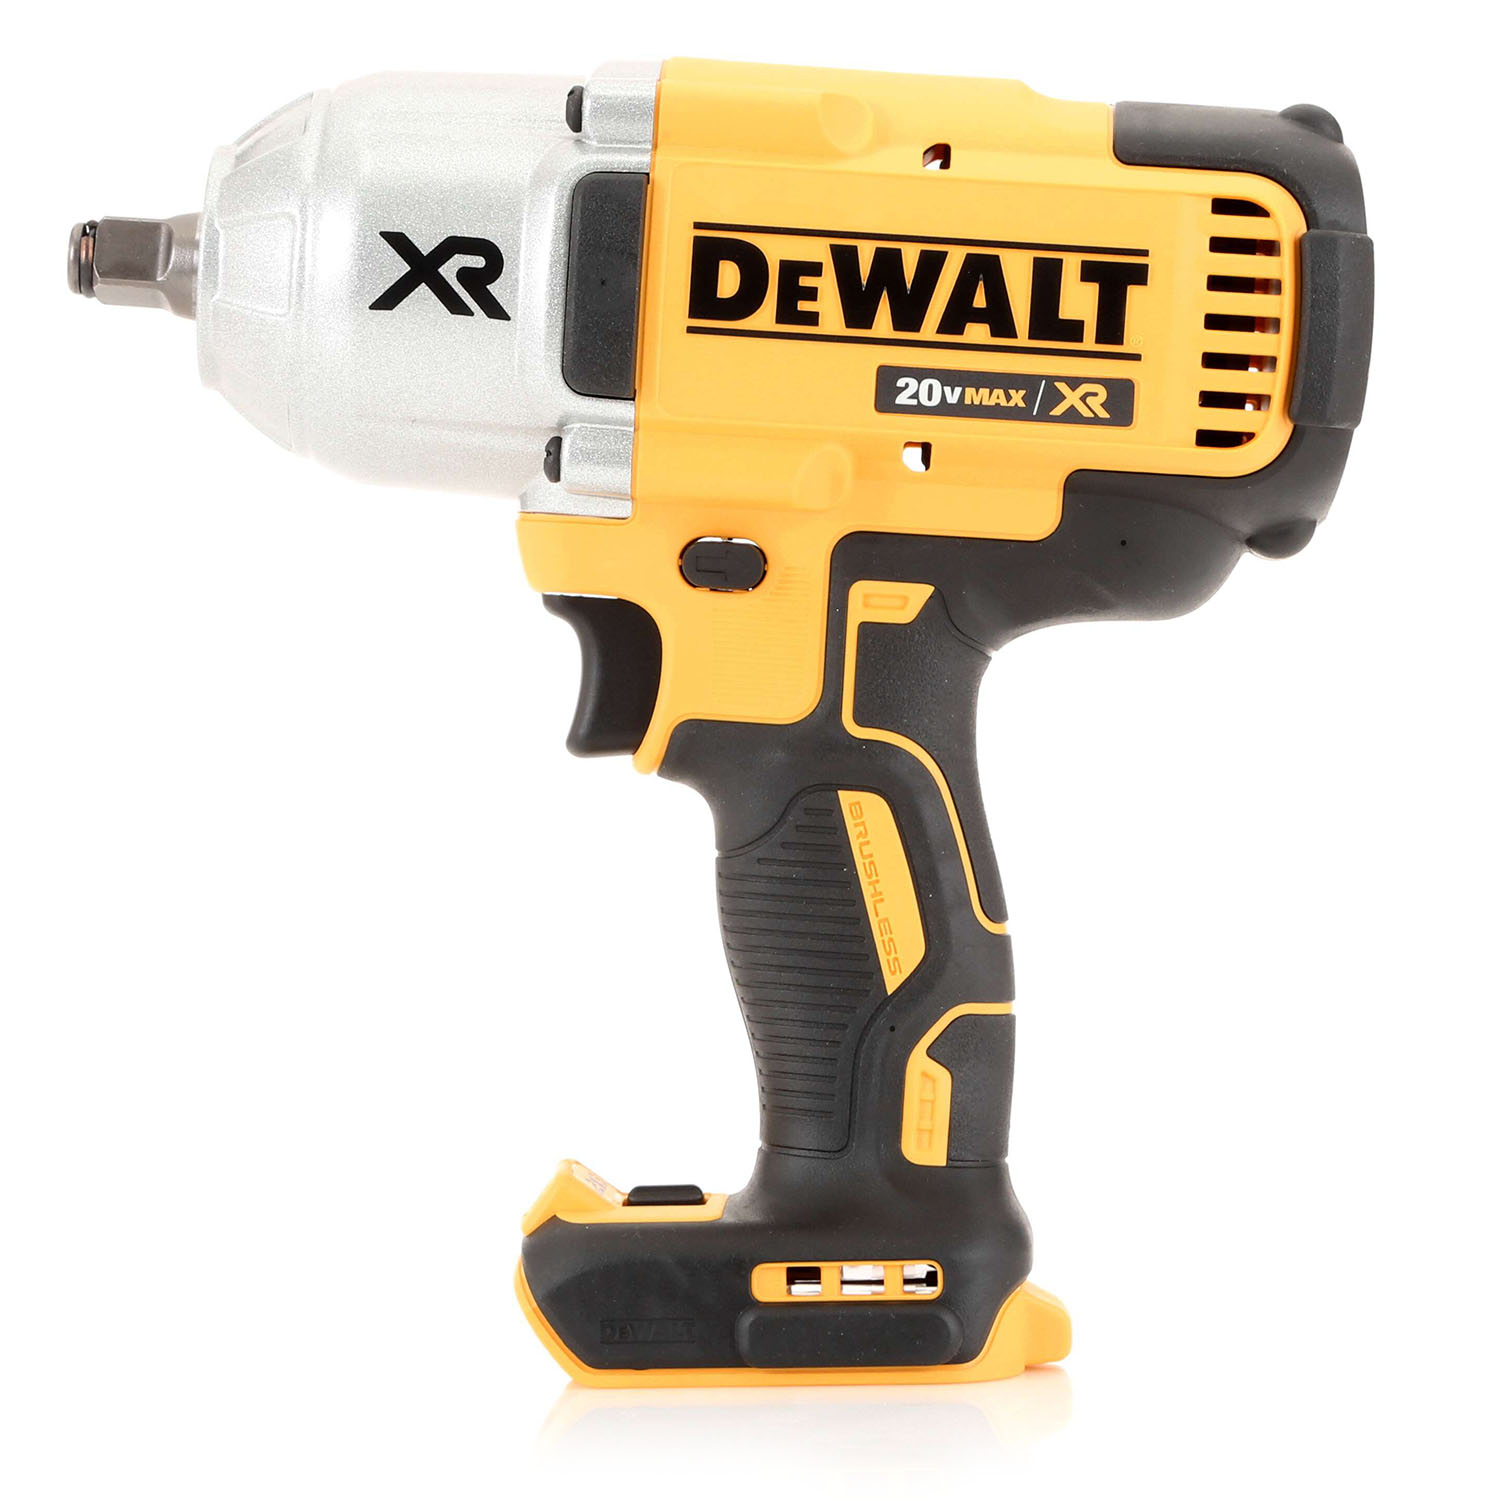 Dewalt Dcf899hb 20v Max Xr Cordless Lithium Ion 1 2 In Brushless Friction Ring Impact Wrench Bare Tool